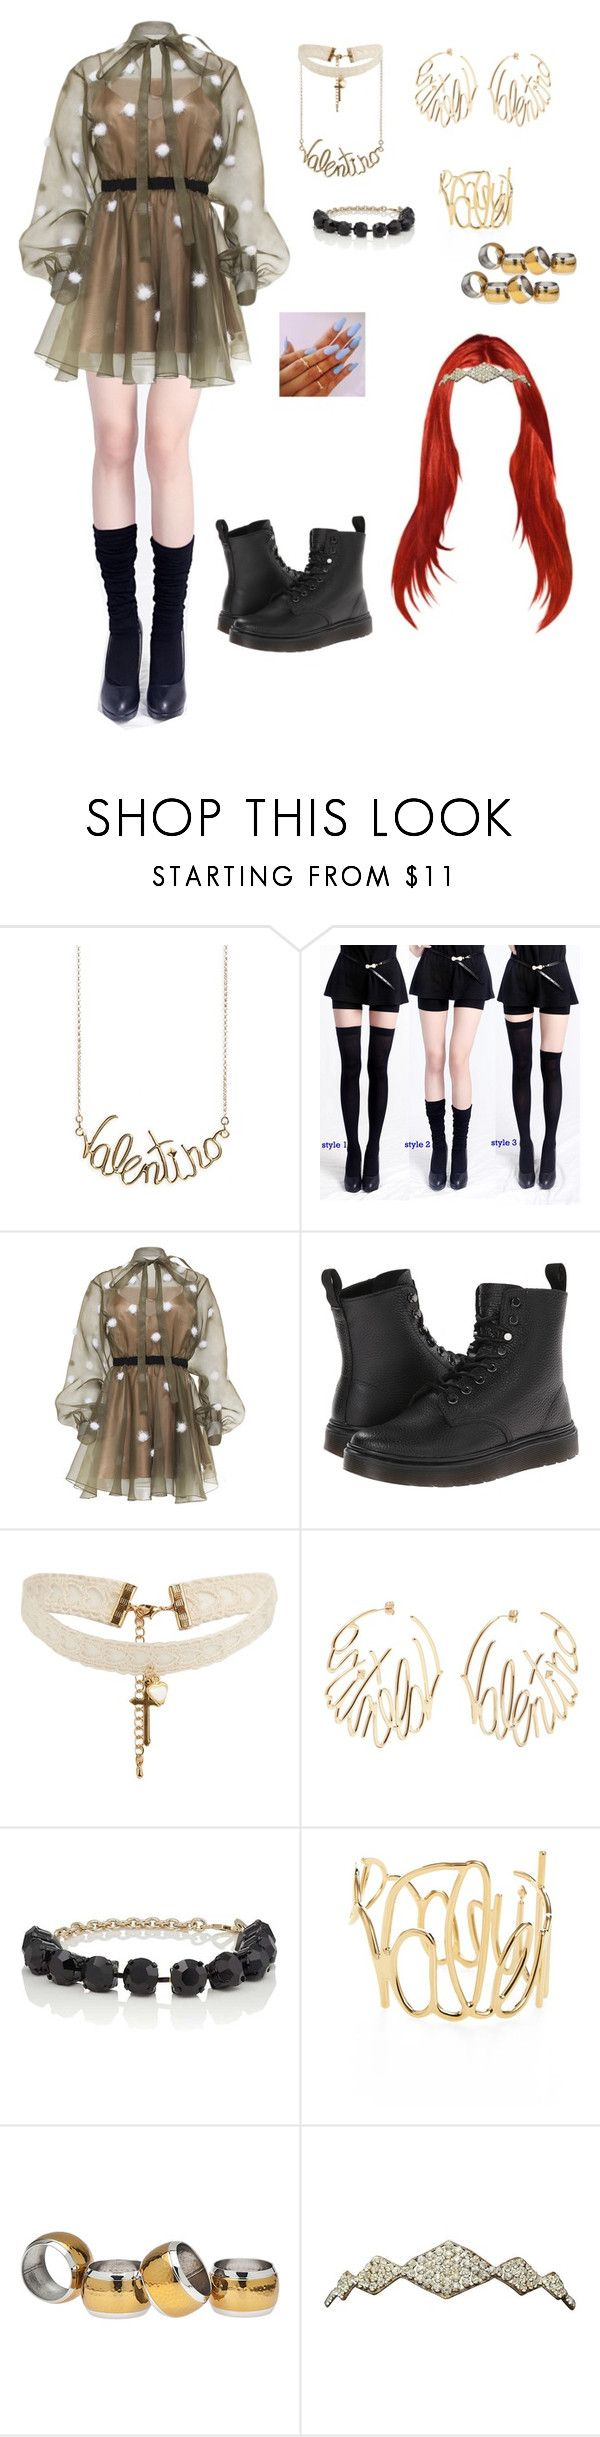 """""""QUEENs from The 32nd Golden Disc Awards 2018 Day 1 - Stage (3)"""" by theshadesofdark ❤ liked on Polyvore featuring Valentino, Dr. Martens, ASOS and Godinger"""